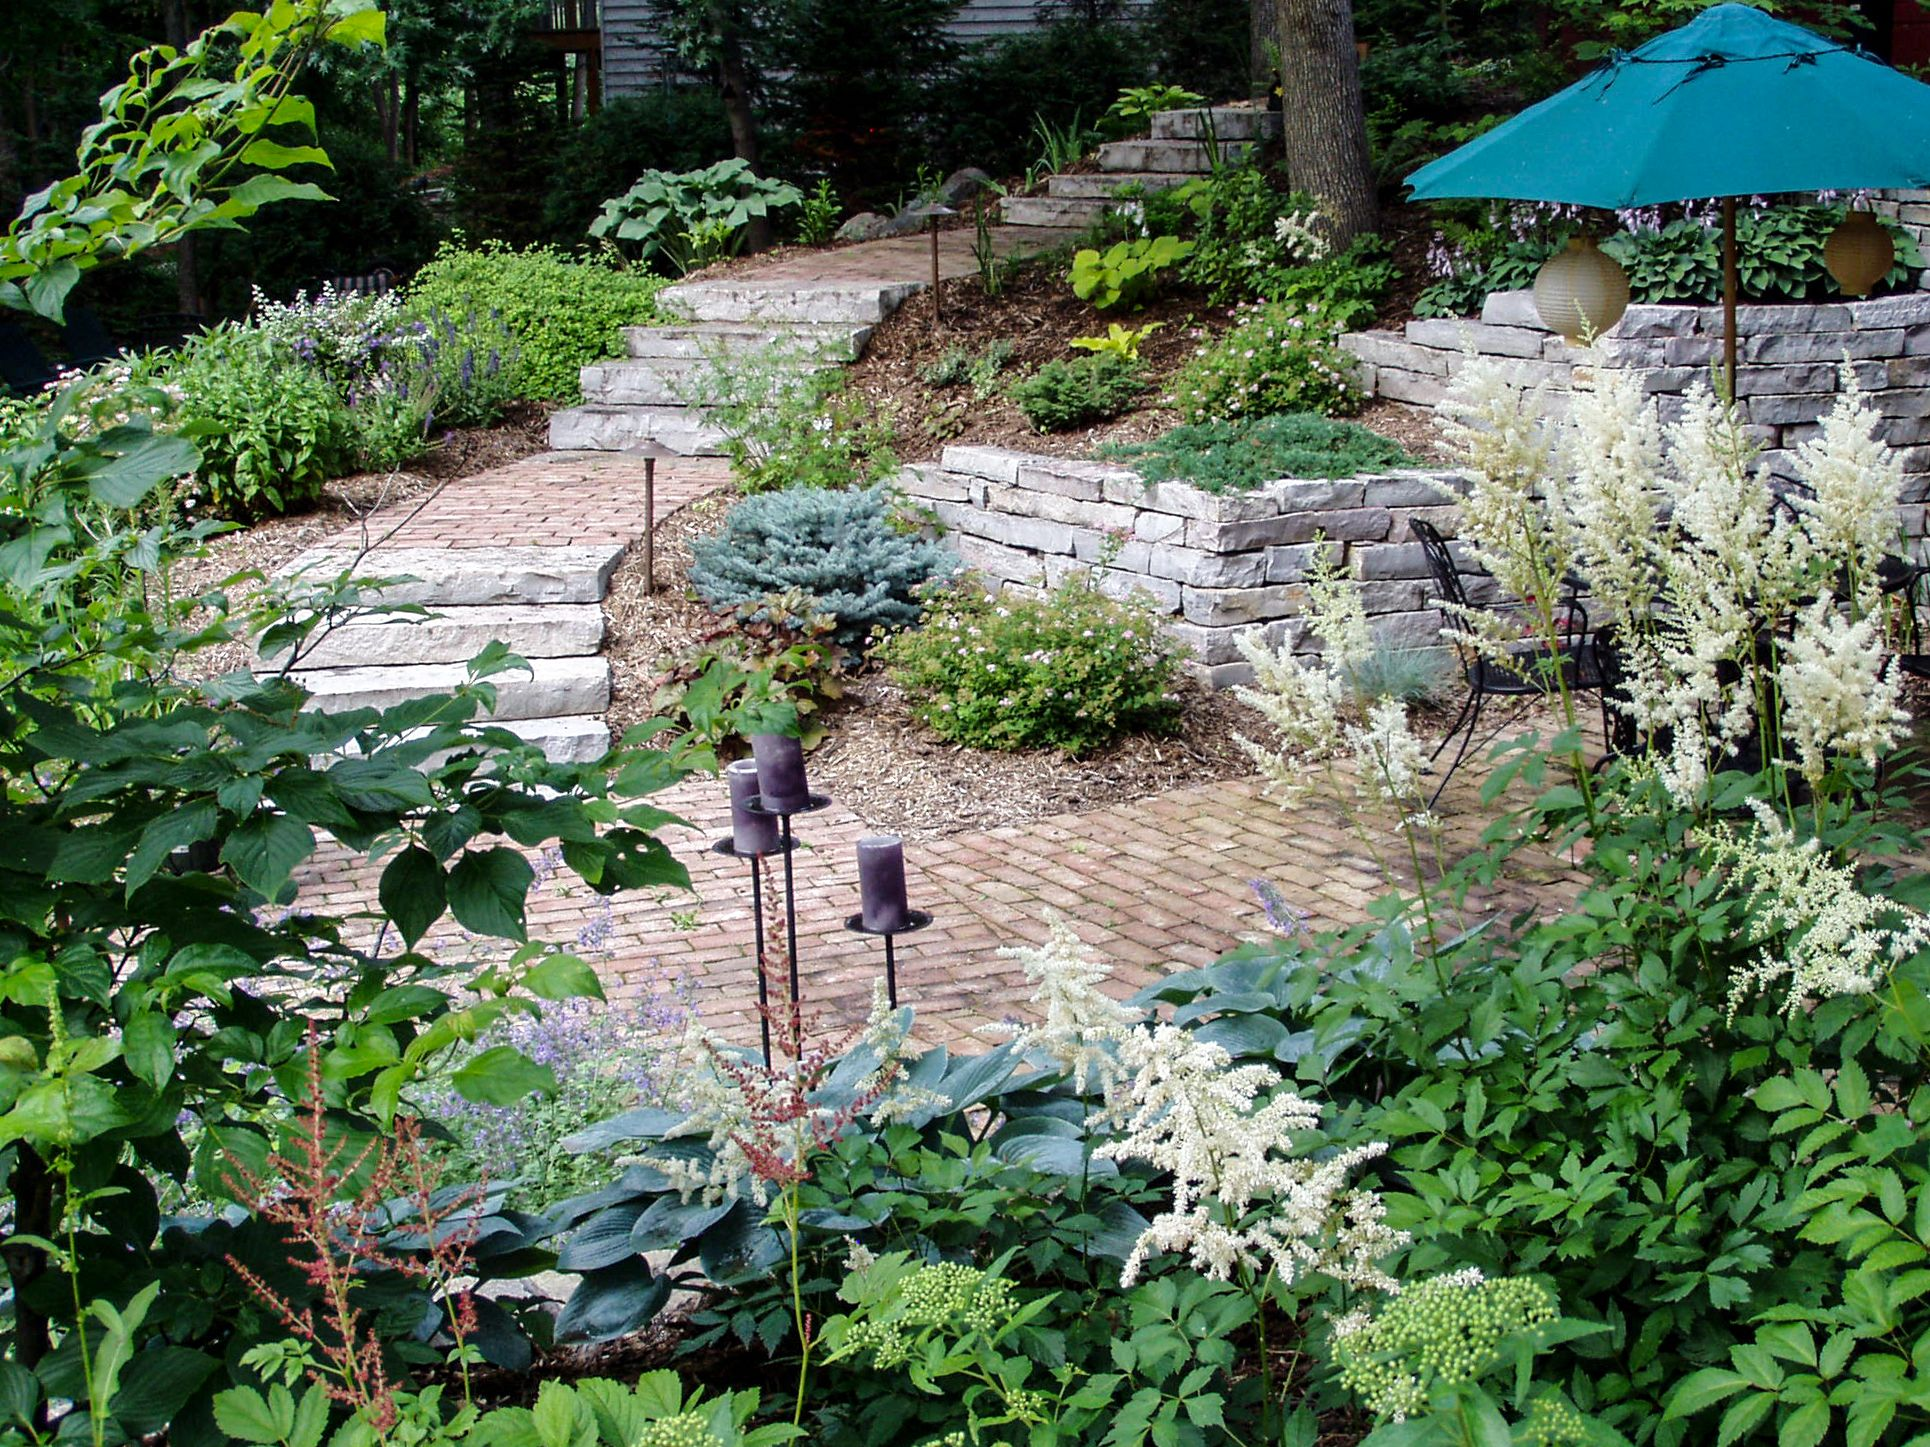 Stone And Pavers Combine To Make This Backyard A Work Of Landscape Design Art Landscape Design Landscape Projects Diy Landscaping